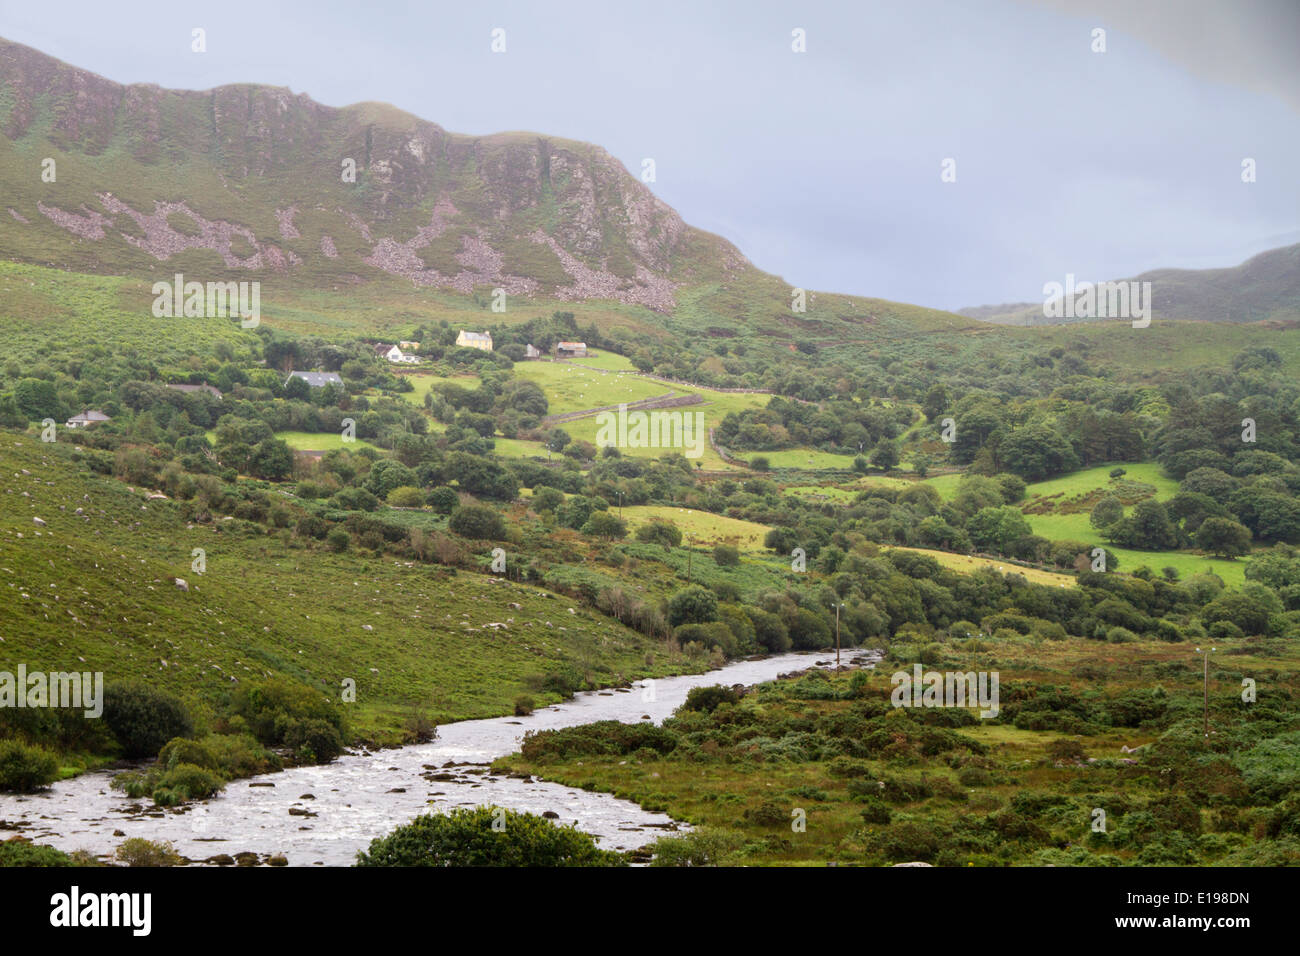 Farms and sheep grazing on the rugged terrain of the Right of Kerry Killarney,Ireland - Stock Image